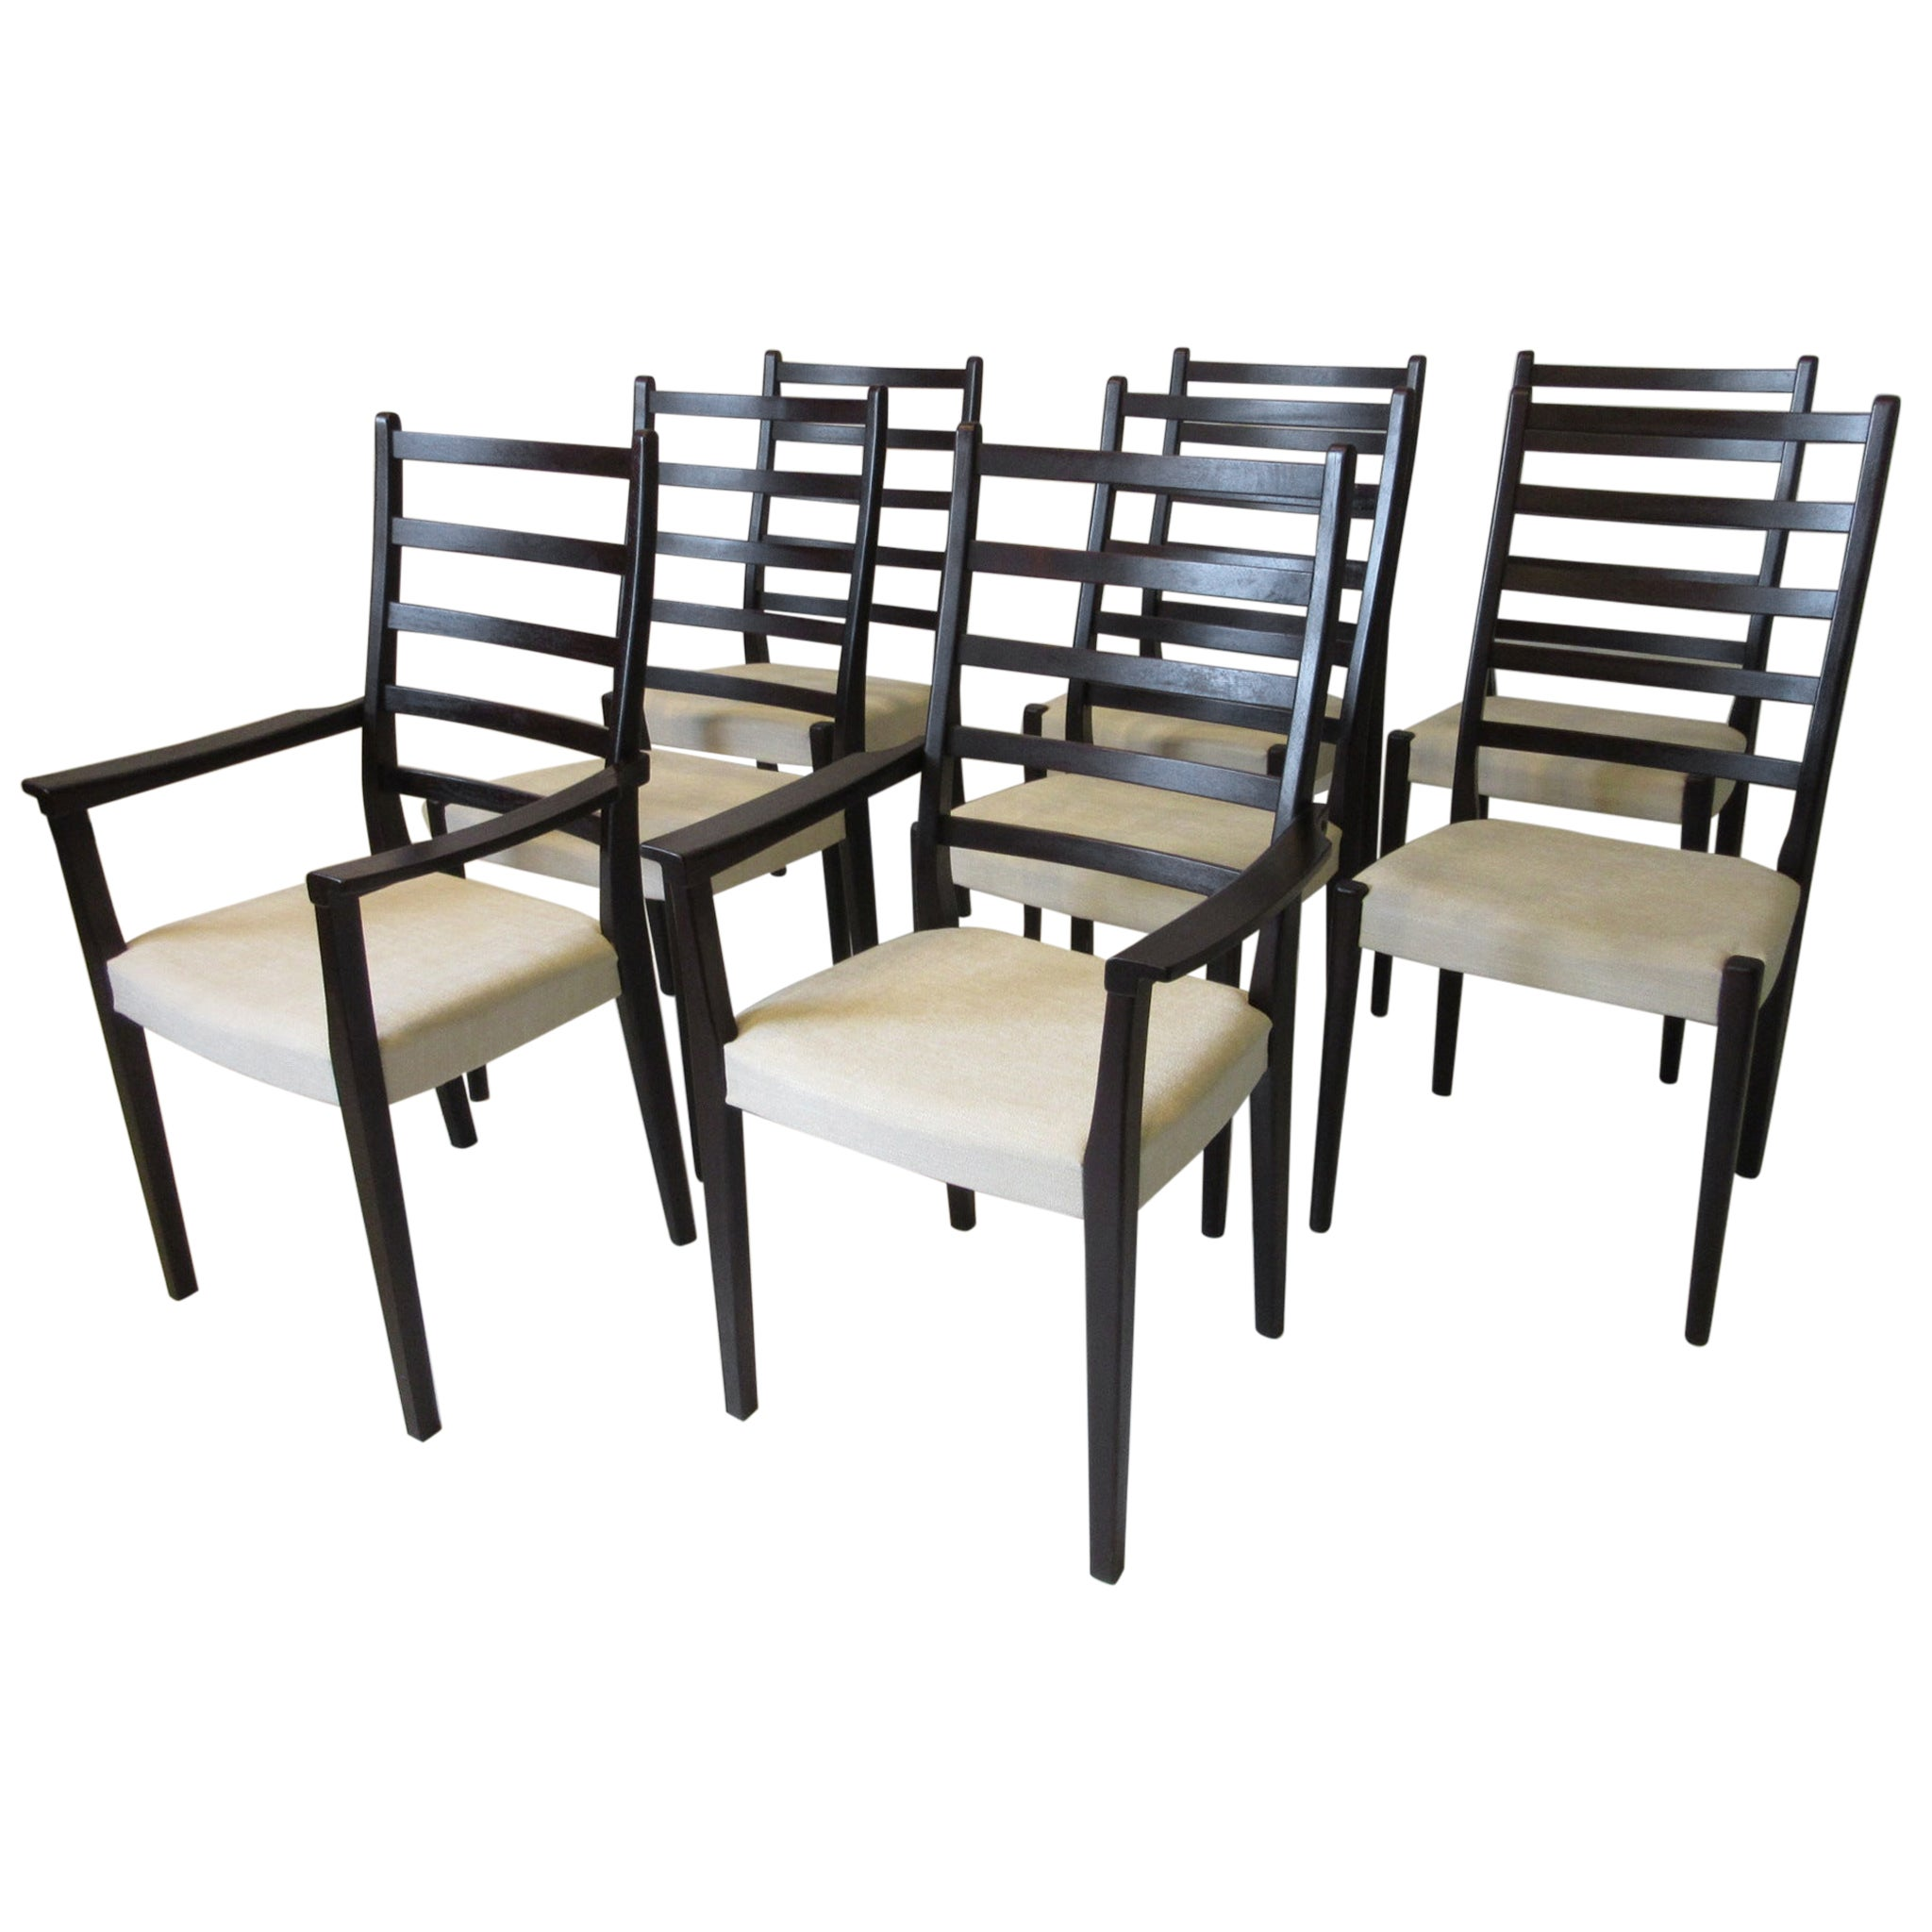 8 Rosewood Dining Chairs by Svegard Markaryd, Sweden